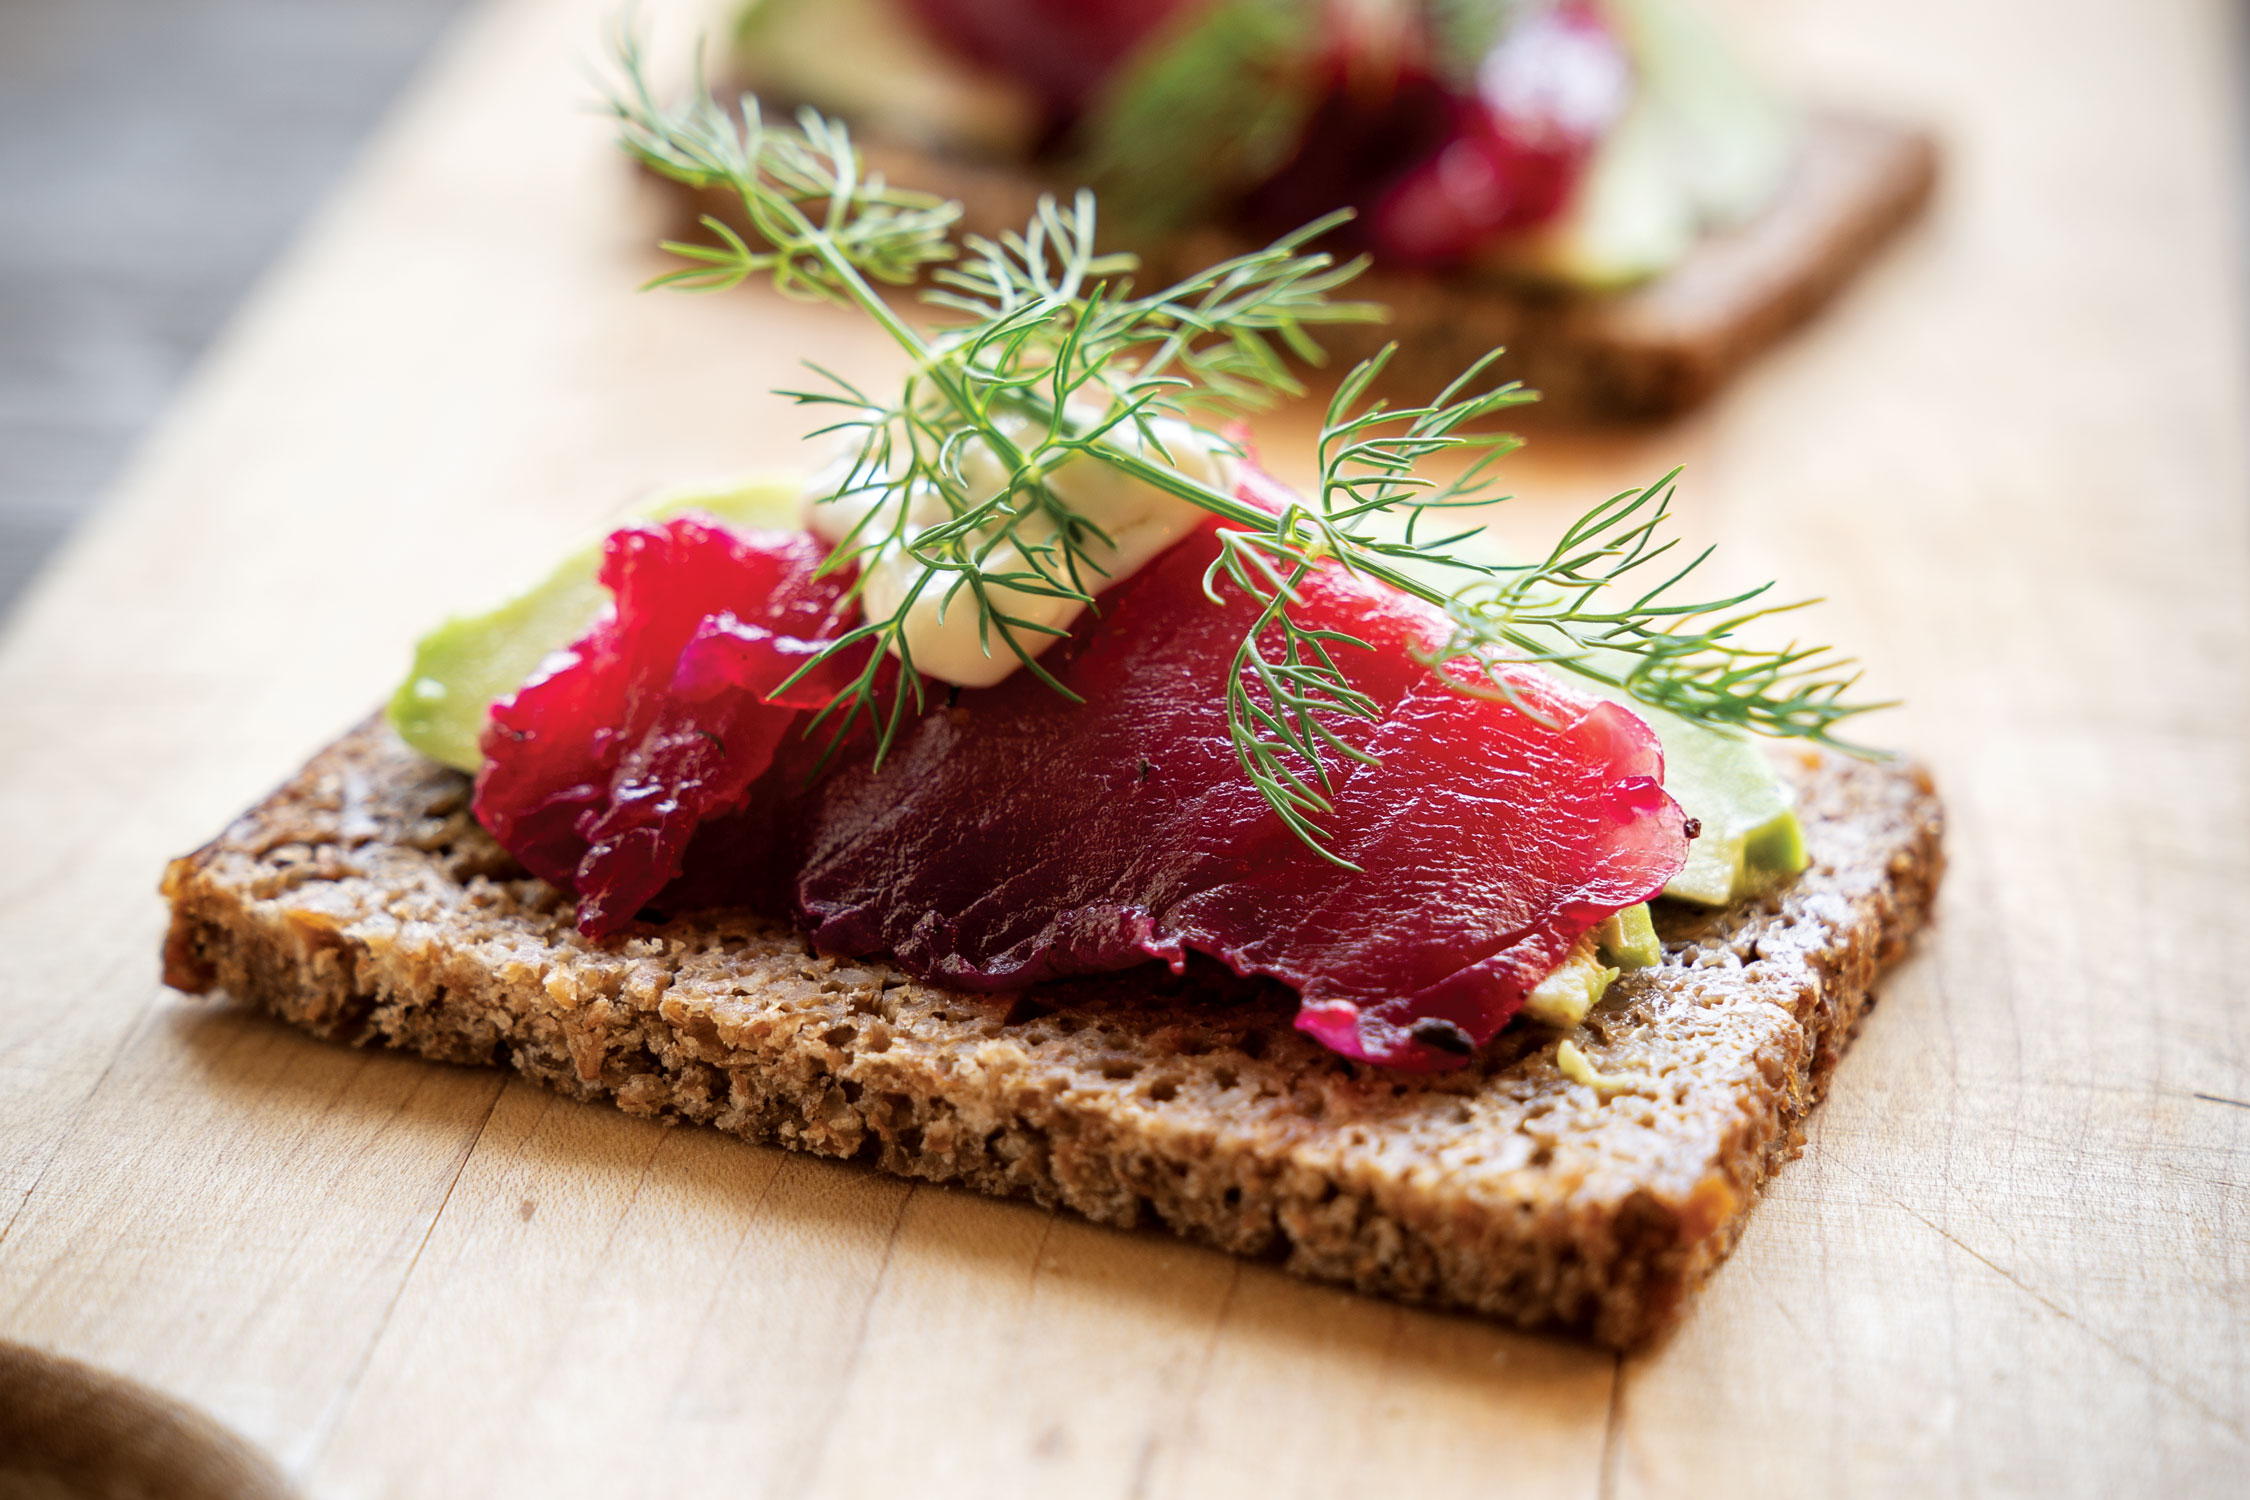 Beet Cured Arctic Char